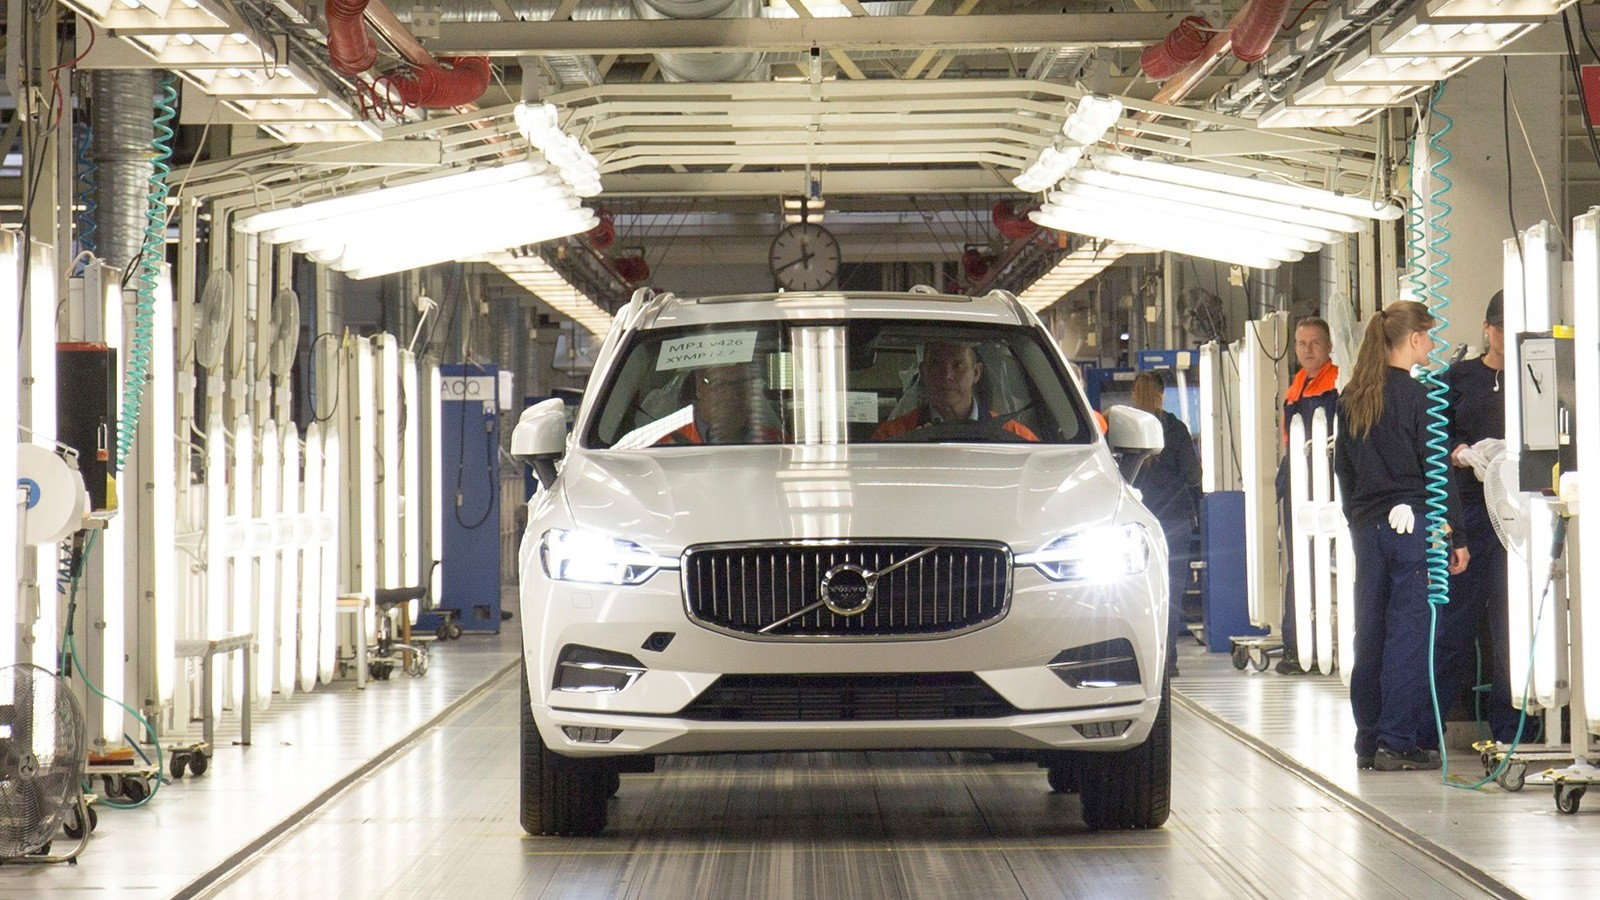 The first new XC60 rolls off the production line in Torslanda, S